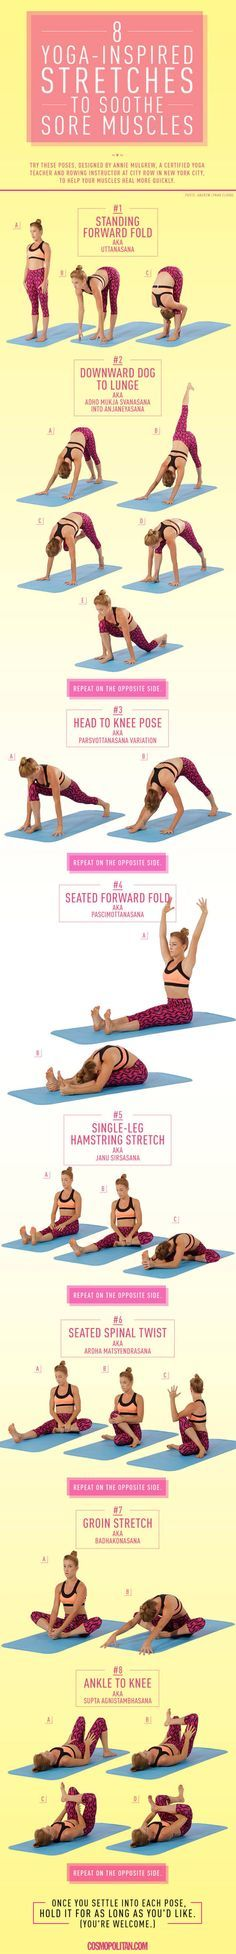 Yoga Stretches for Sore Muscles by cosmopolitan: When you work out, your muscles contract and shorten, which can leave you feeling stiff. Stretching increases blood flow to the muscles to relieve this stiffness, lengthen muscles, and improve your flexibility for a greater range of motion (and lower risk of injury) the next time you work out... #Yoga_Stretches #Sore_Muscles